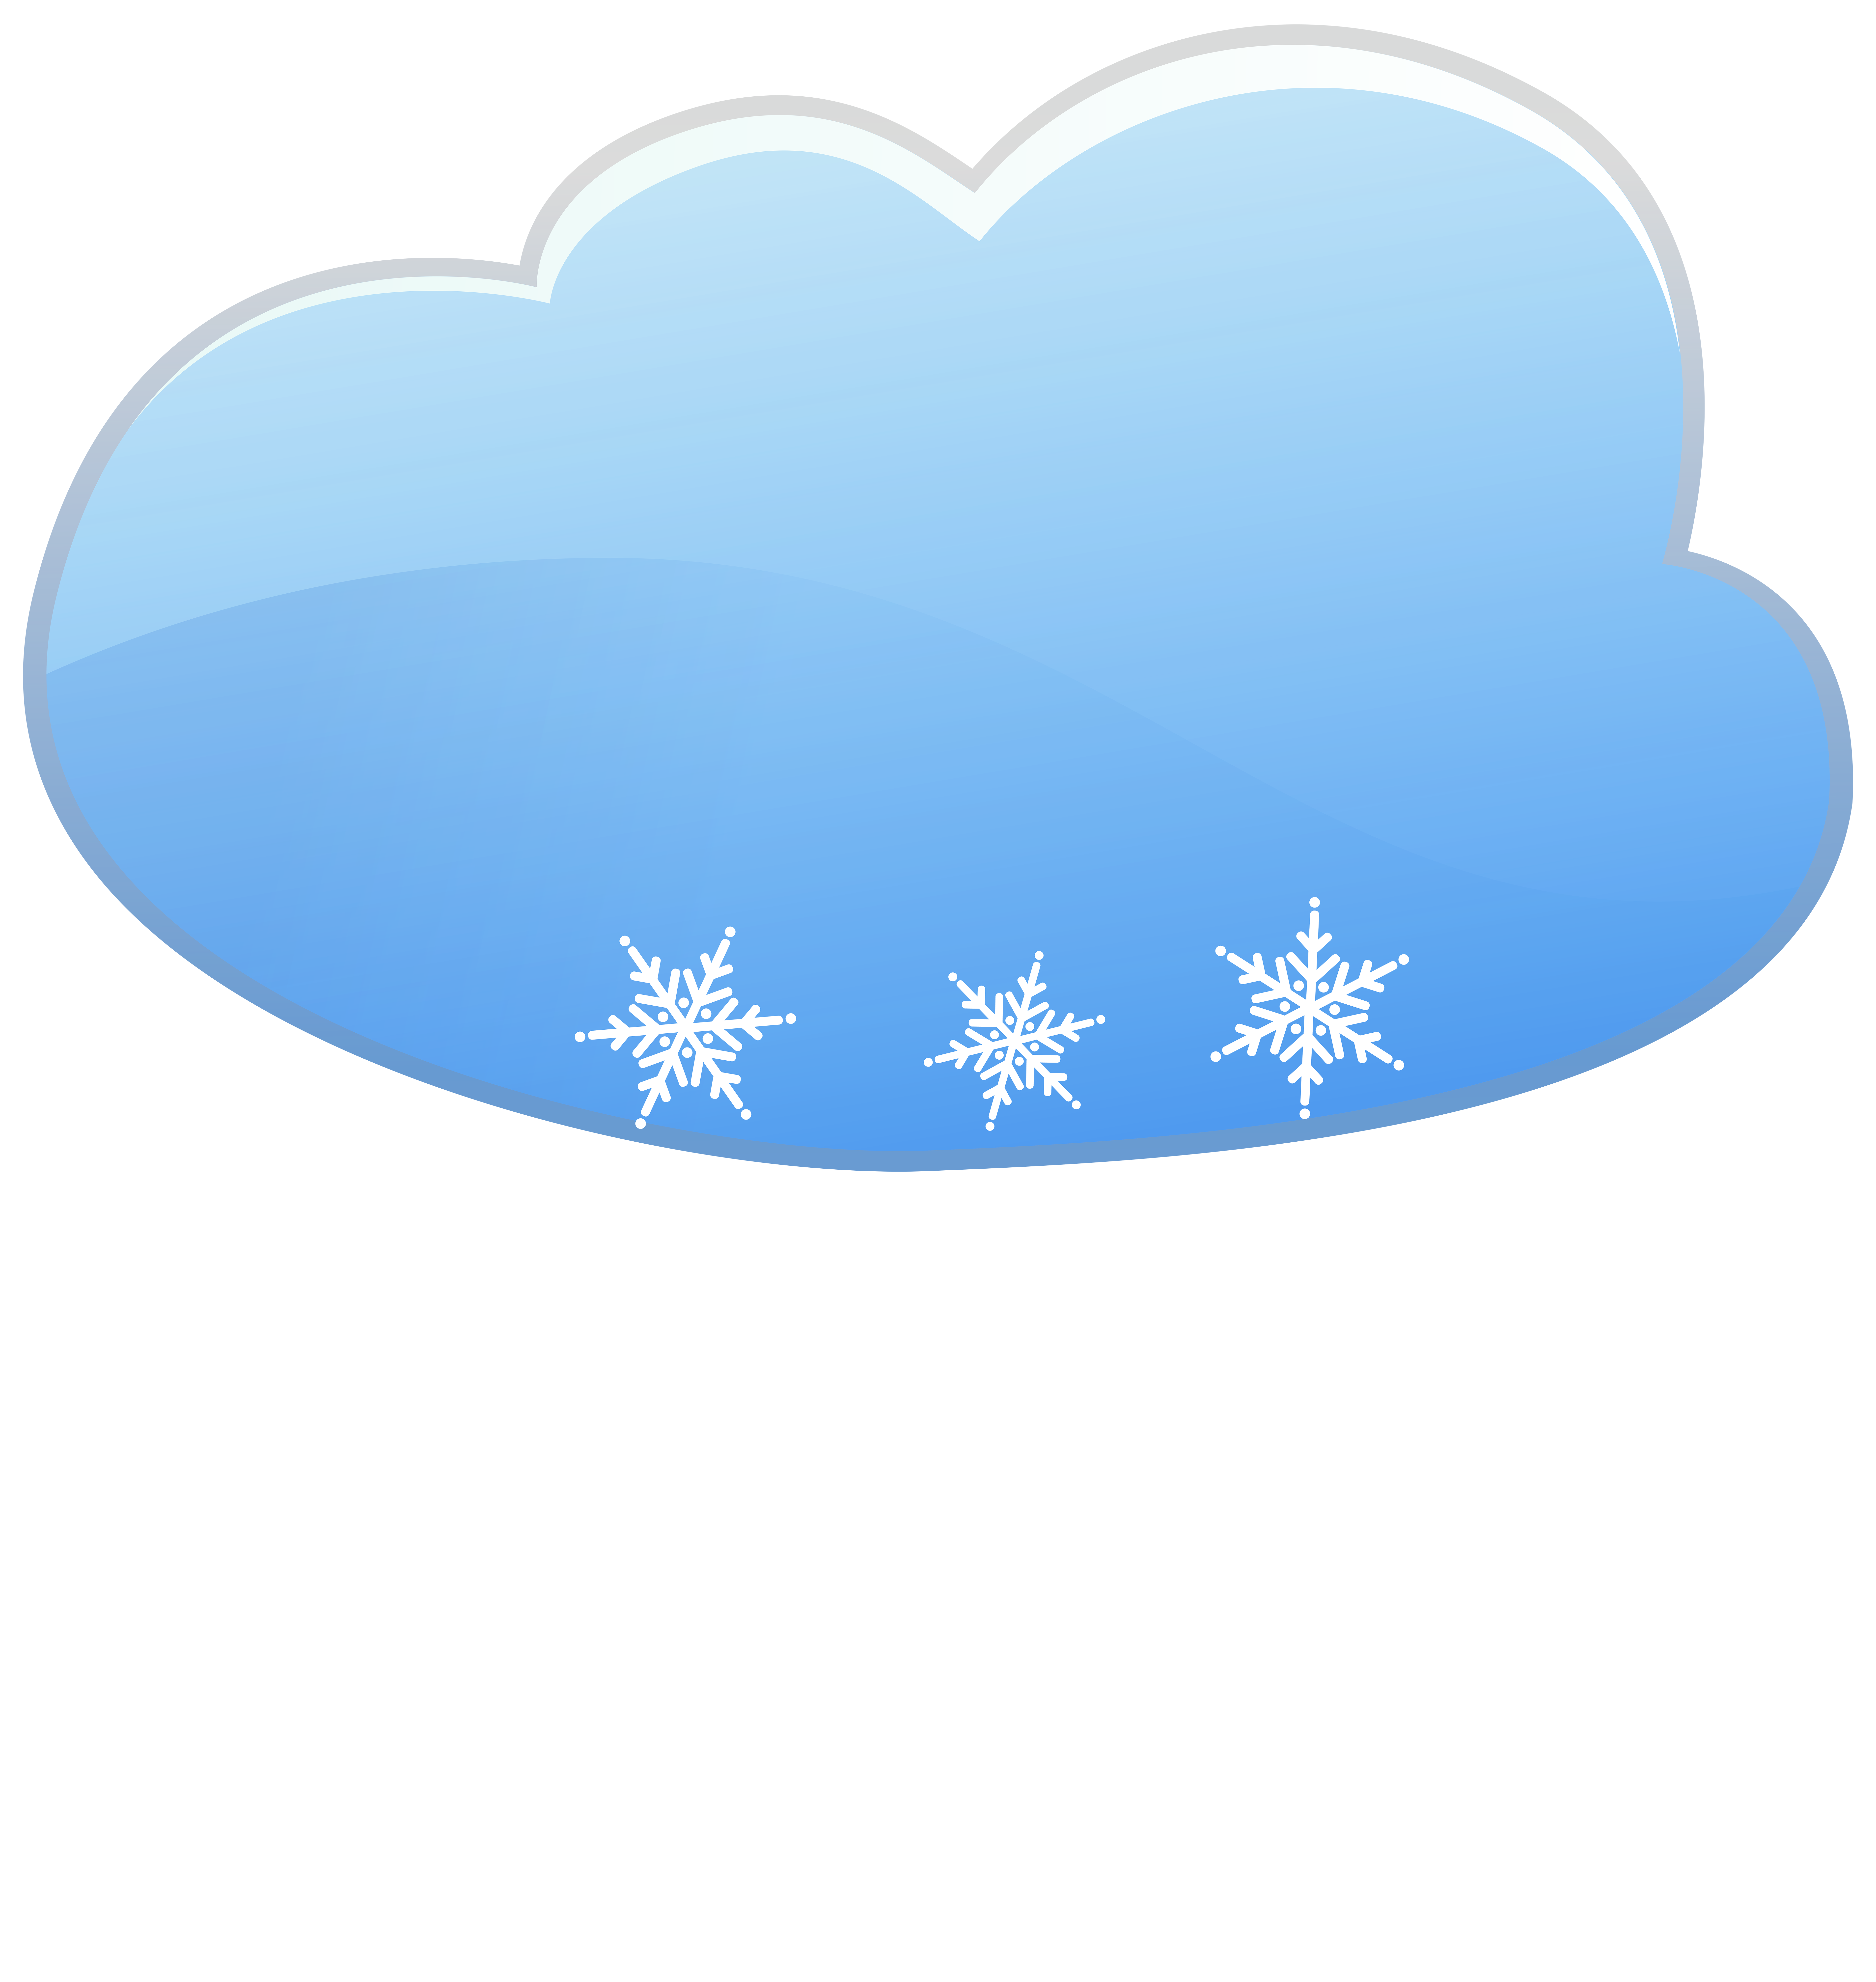 Clipart snow light snow. Cloud and weather icon